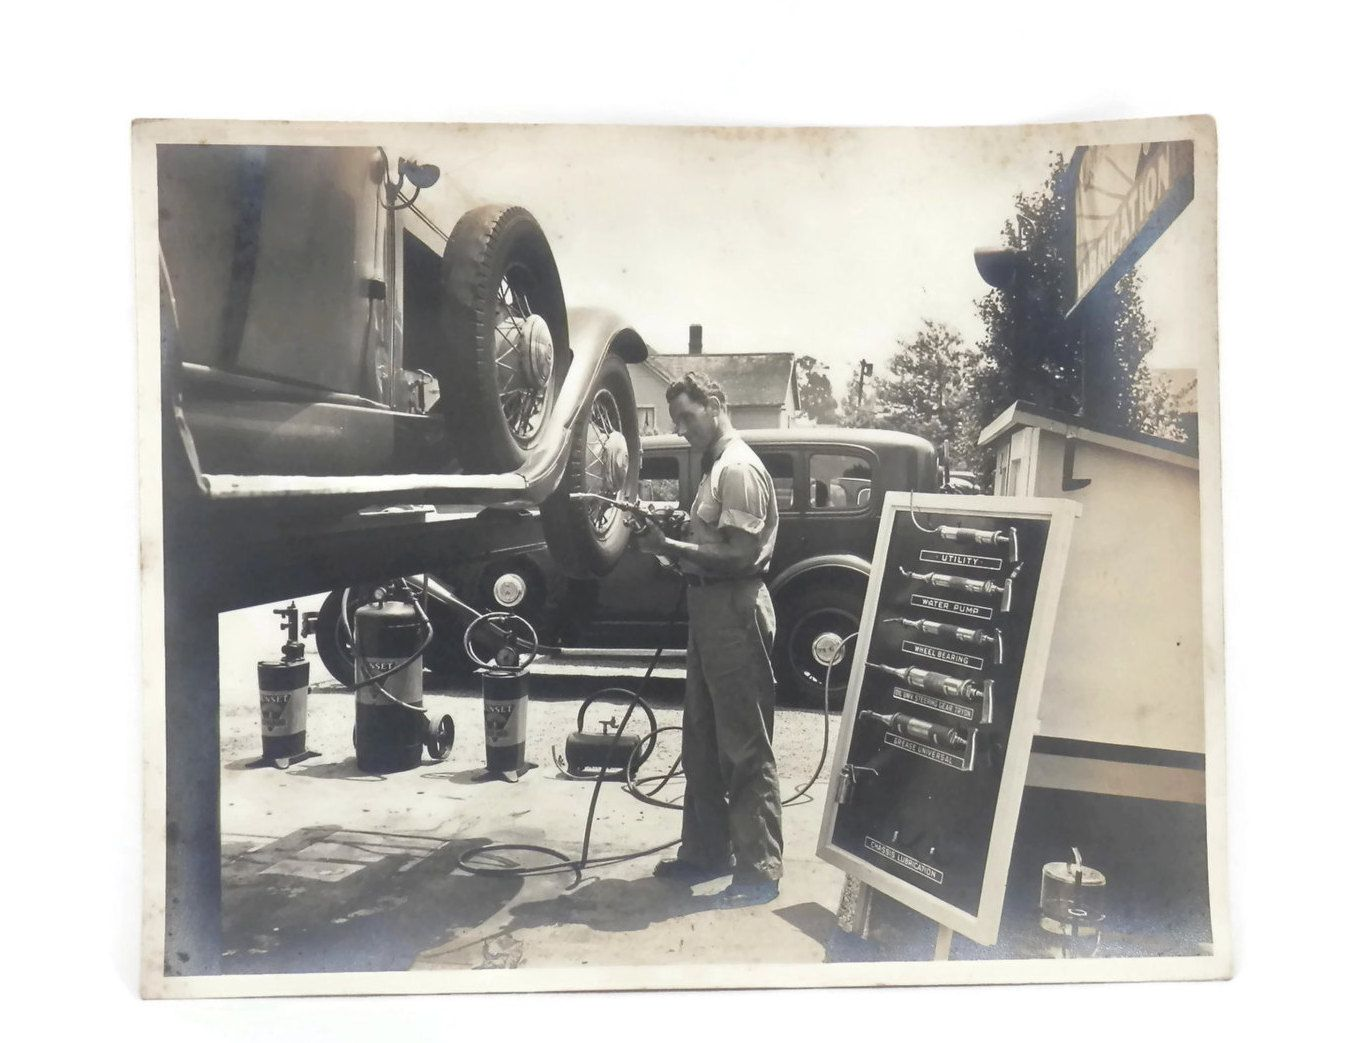 1920's Gas Station Mechanics Photograph with Sunset Tools